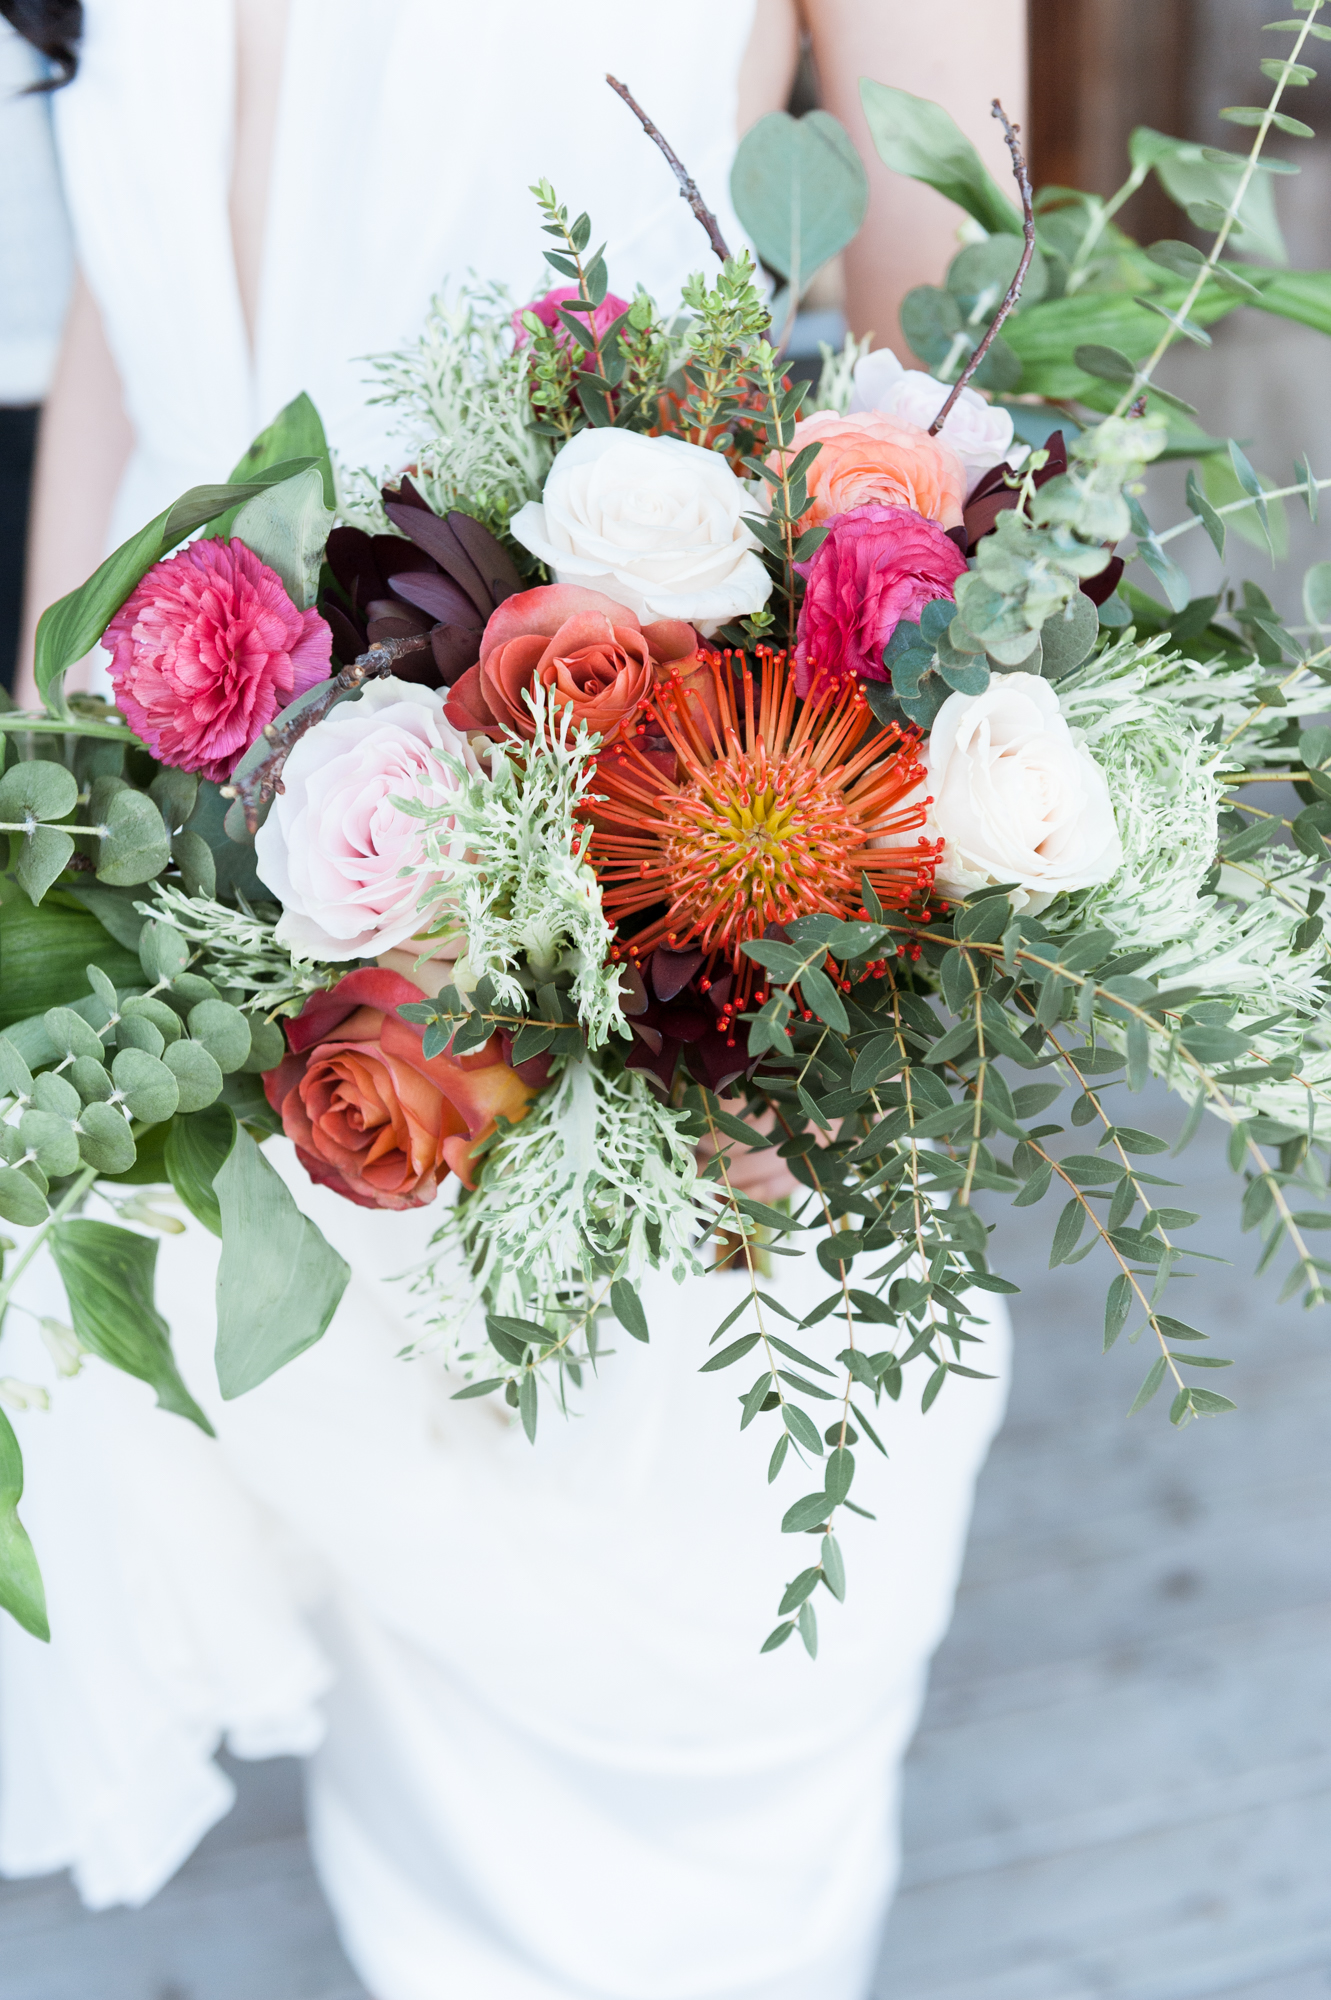 5 things your wedding florist wants you to know